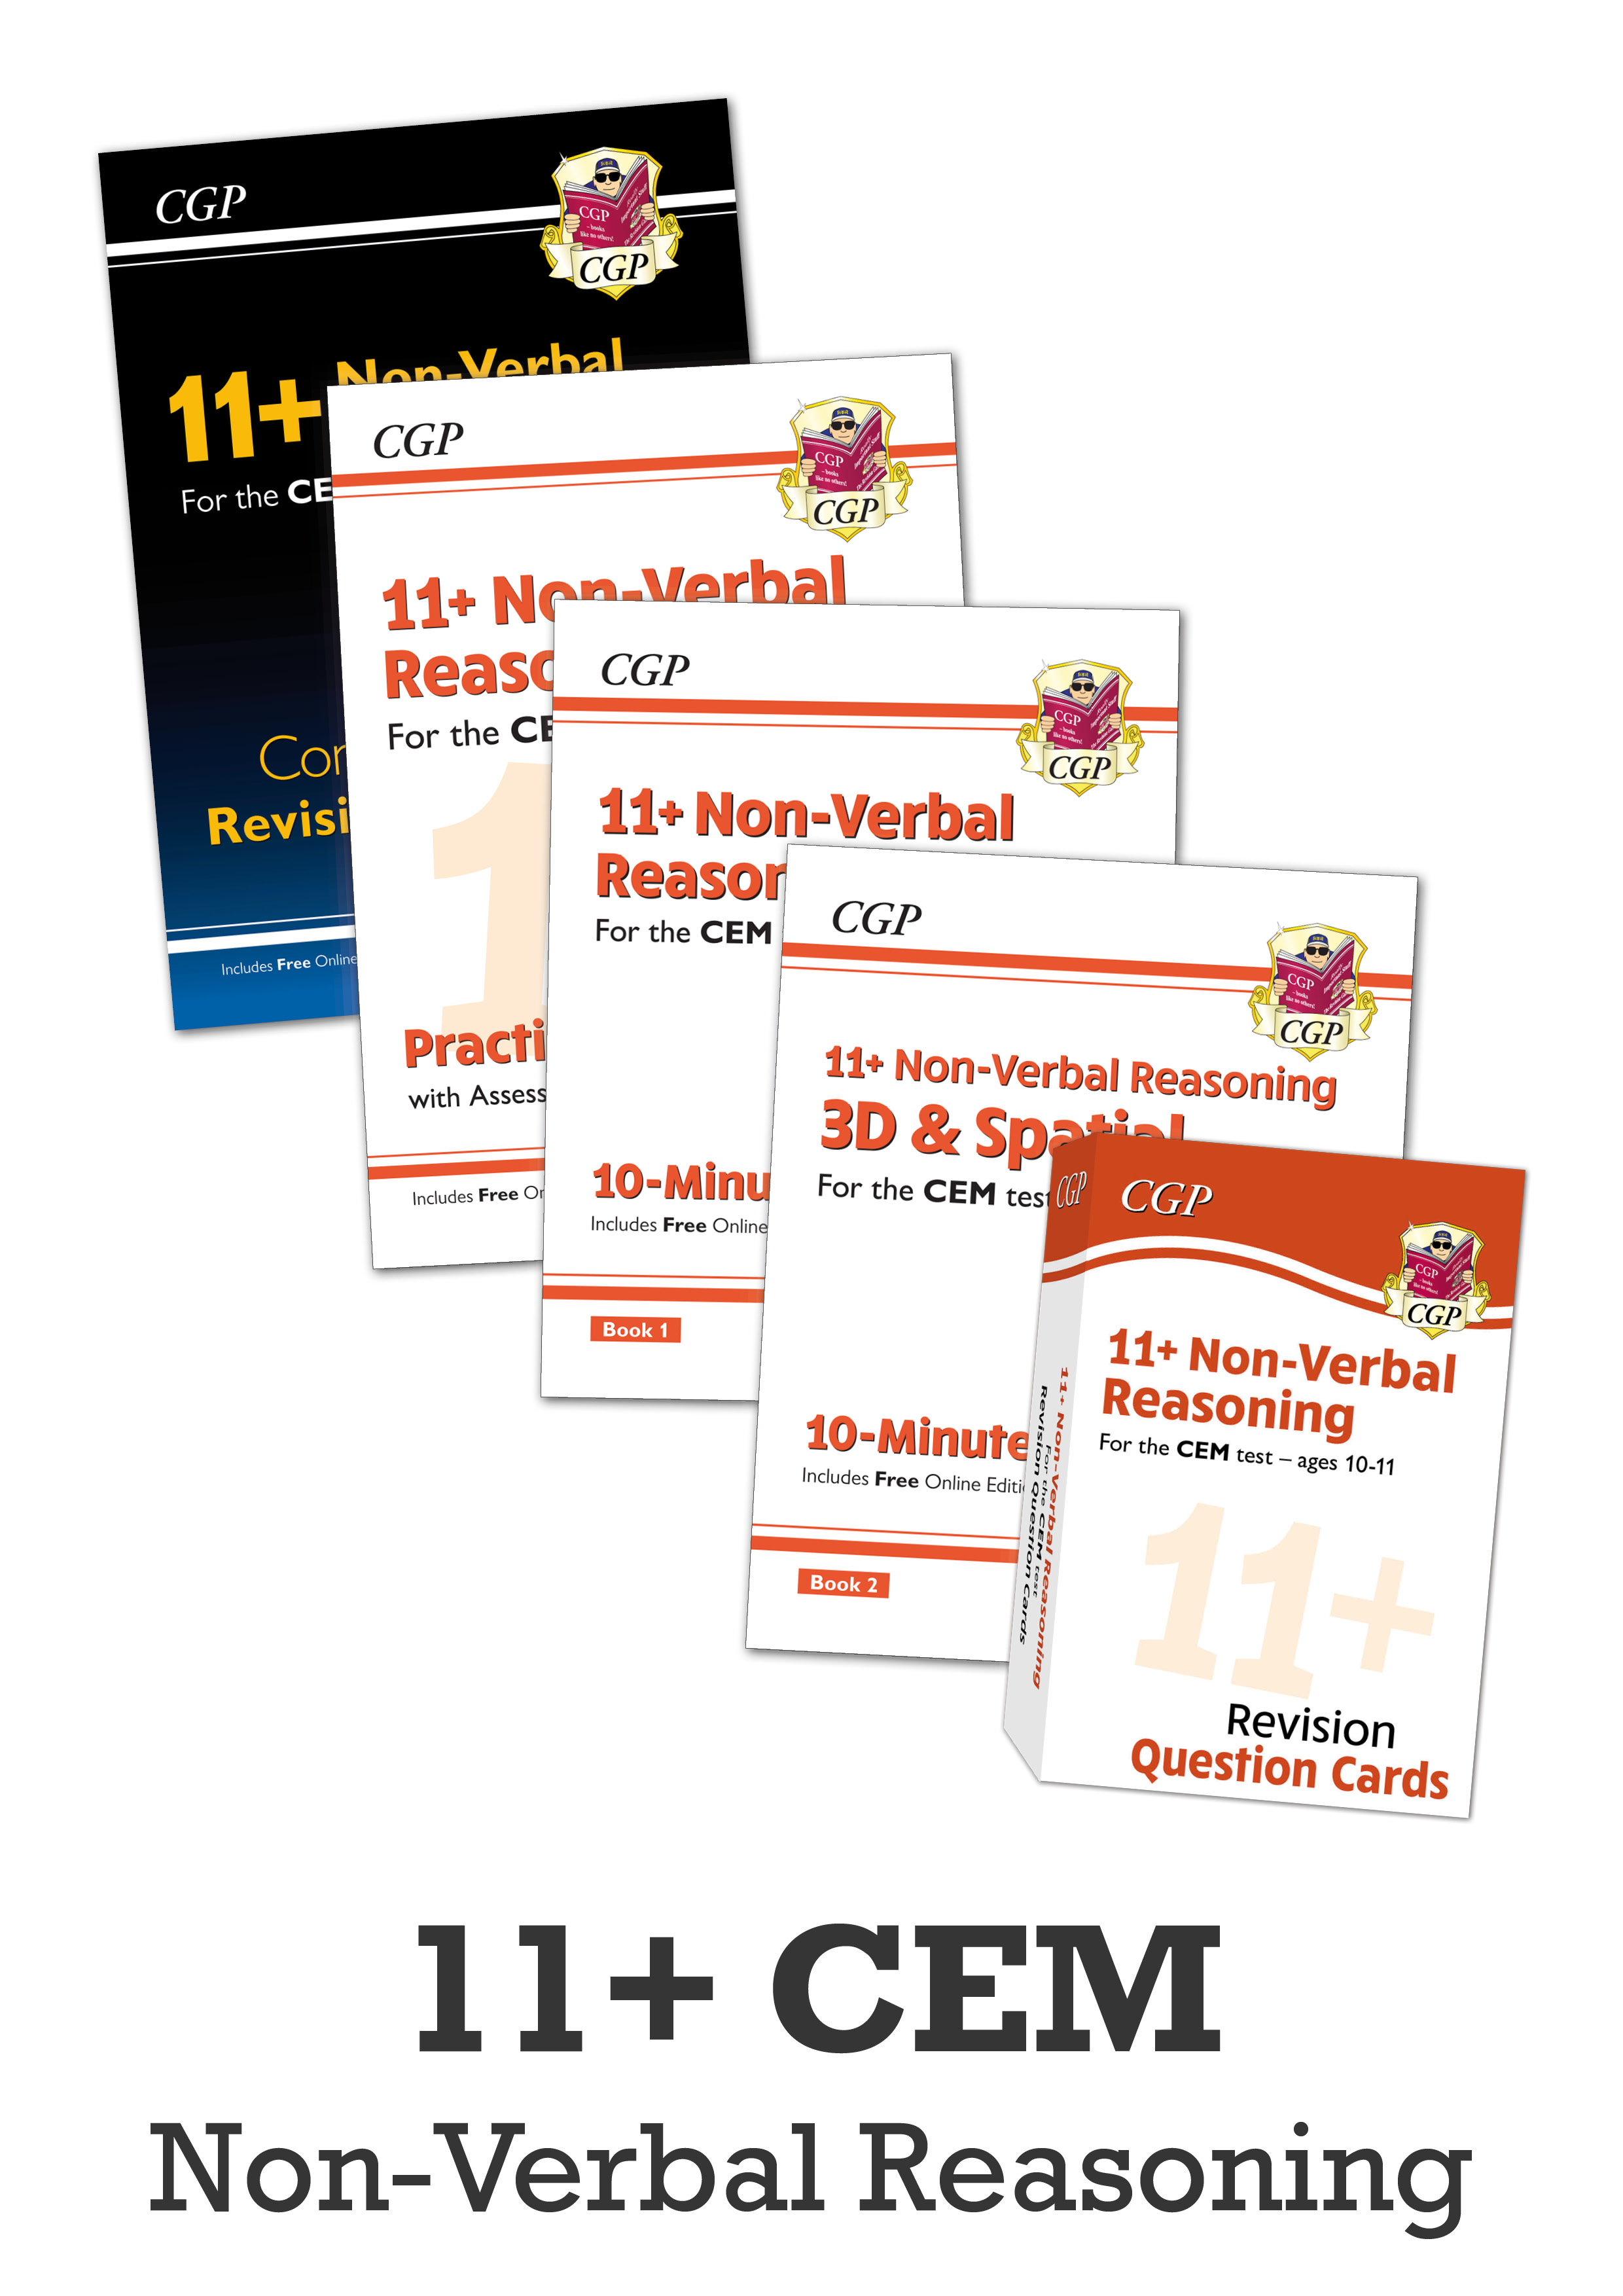 N6BDE1 - 11+ CEM Non-Verbal Reasoning Study & Practice Bundle - for Ages 10-11